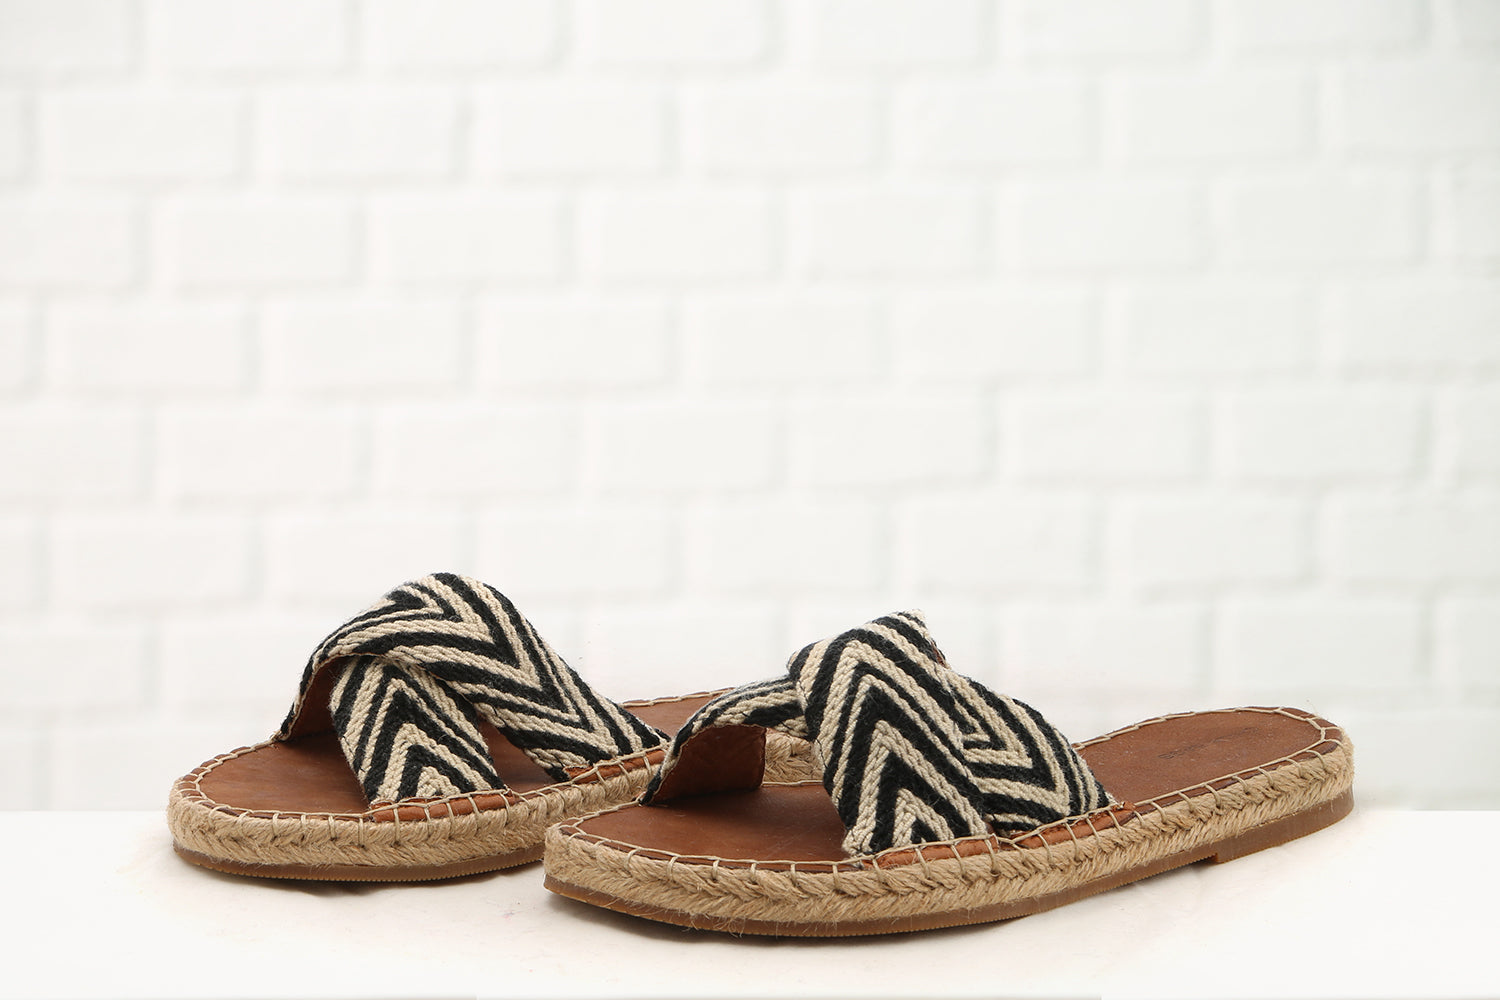 Mimi N Cross Sandals